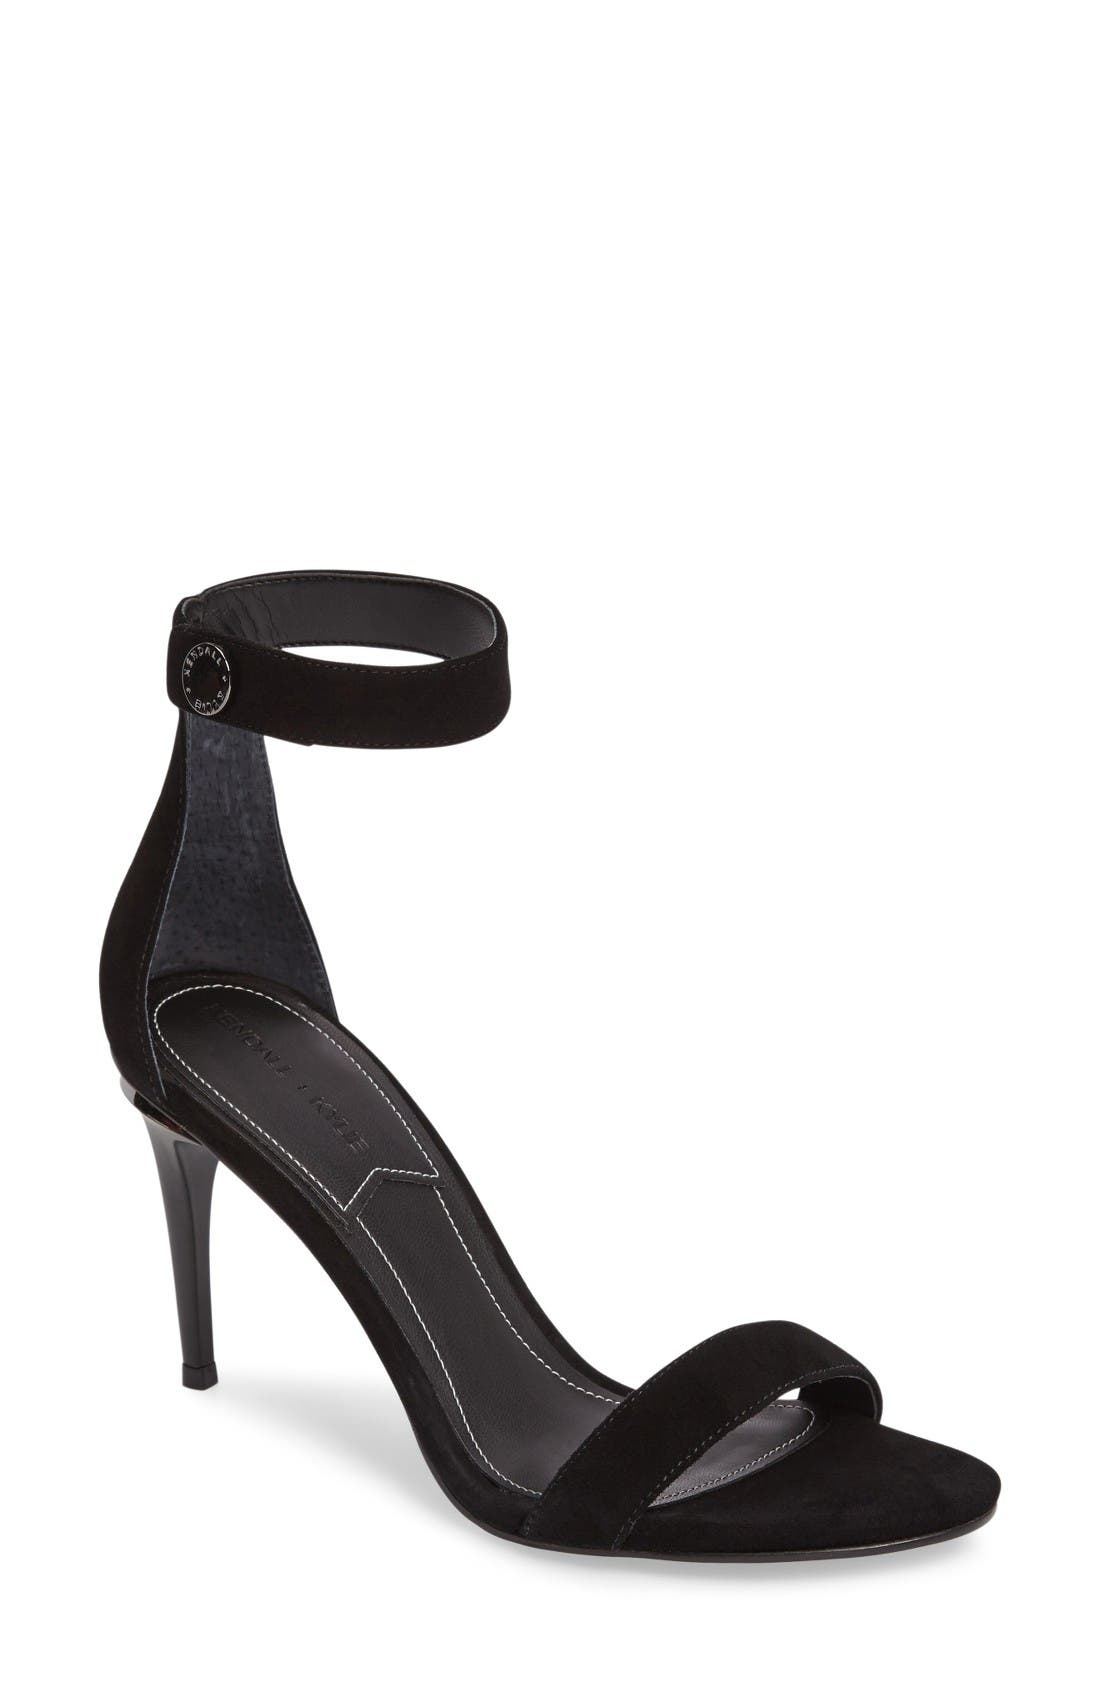 KENDALL + KYLIE Madelyn Sandal